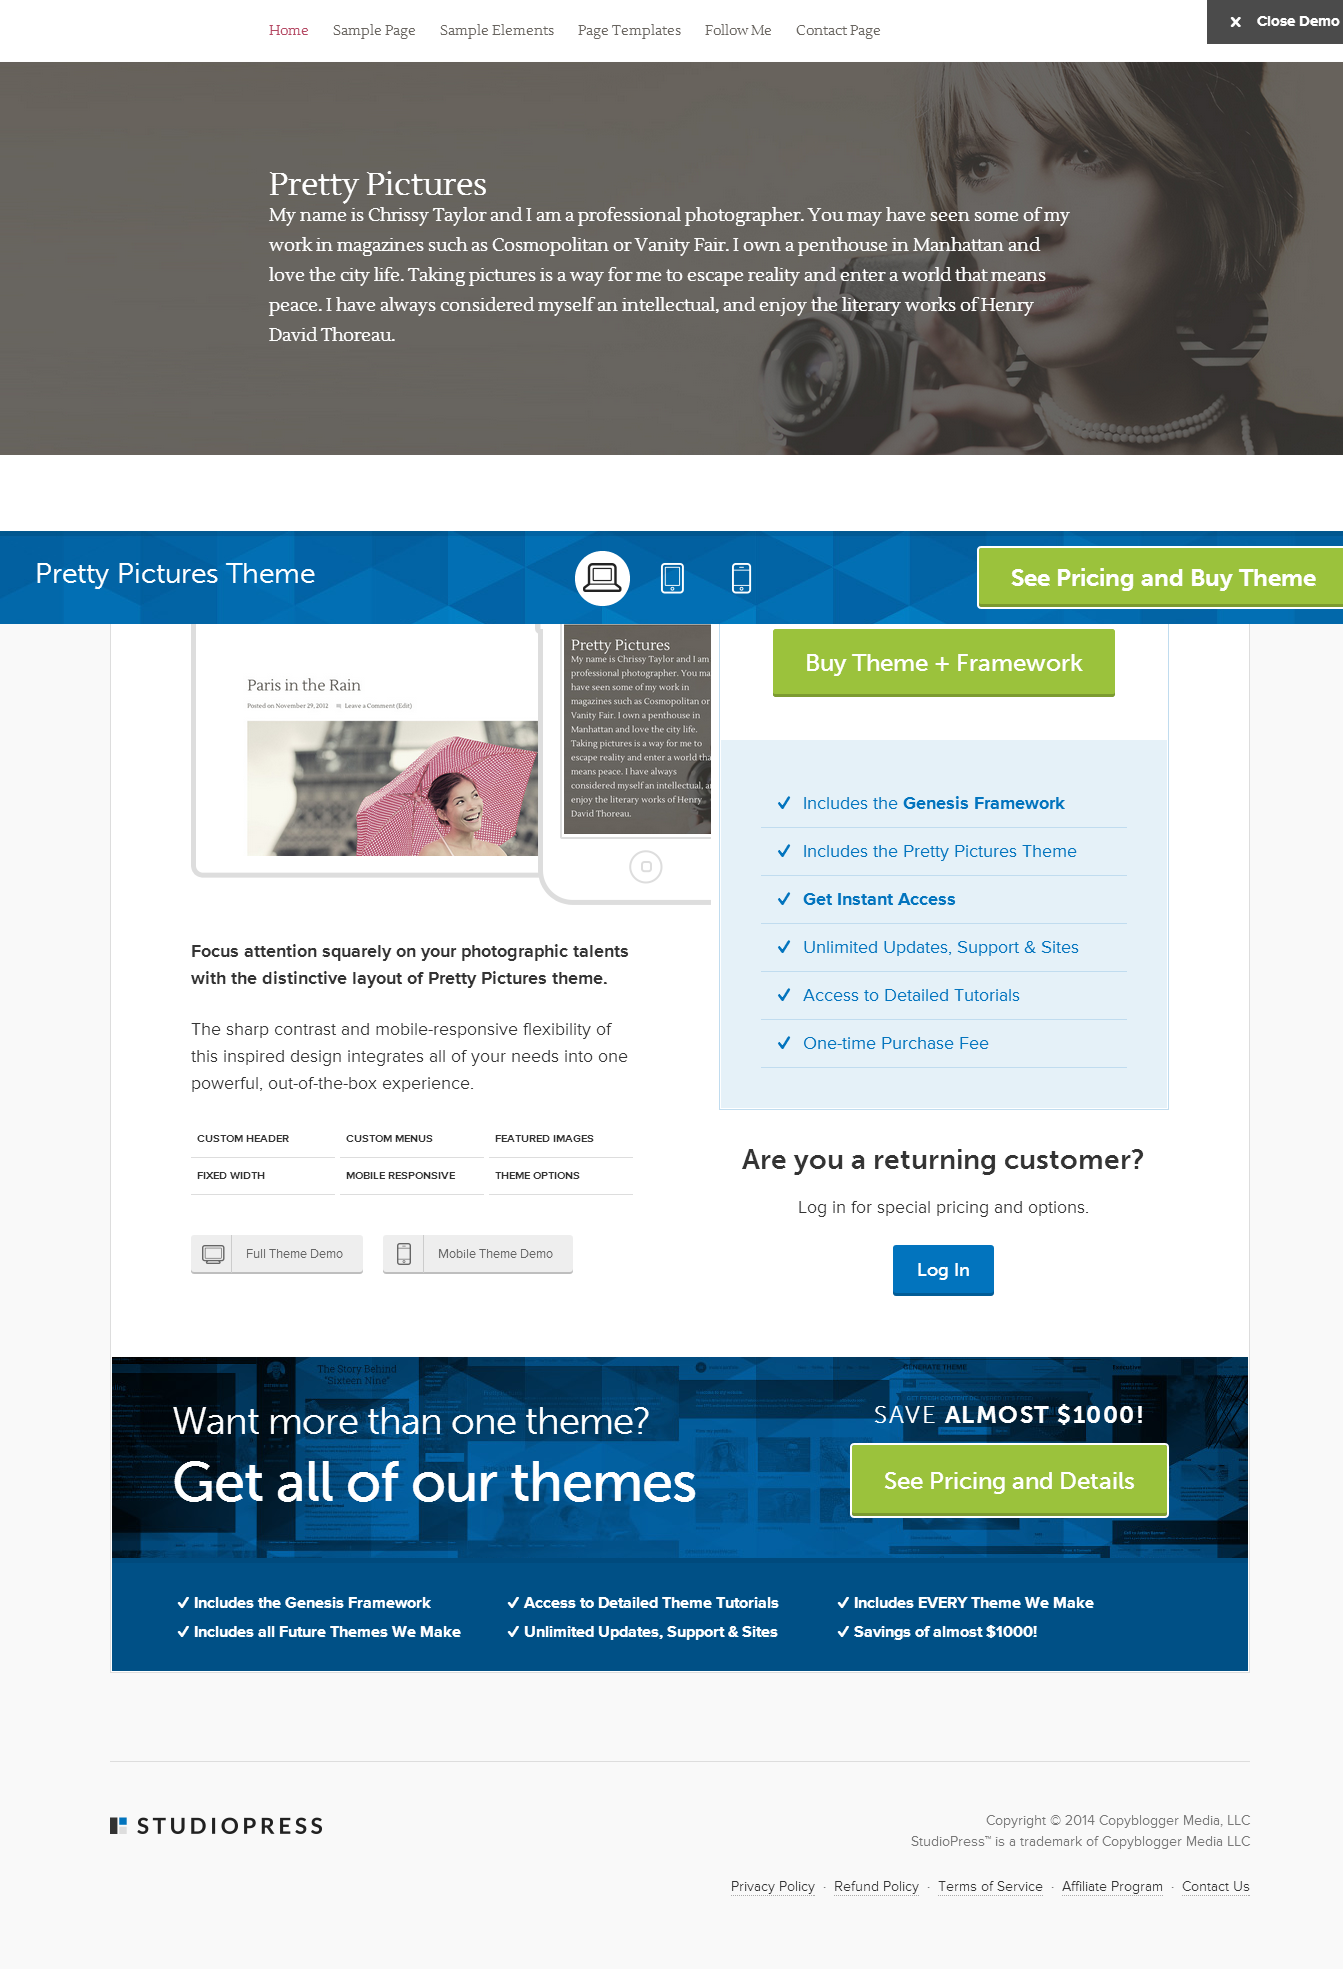 pretty pictures theme by studiopress